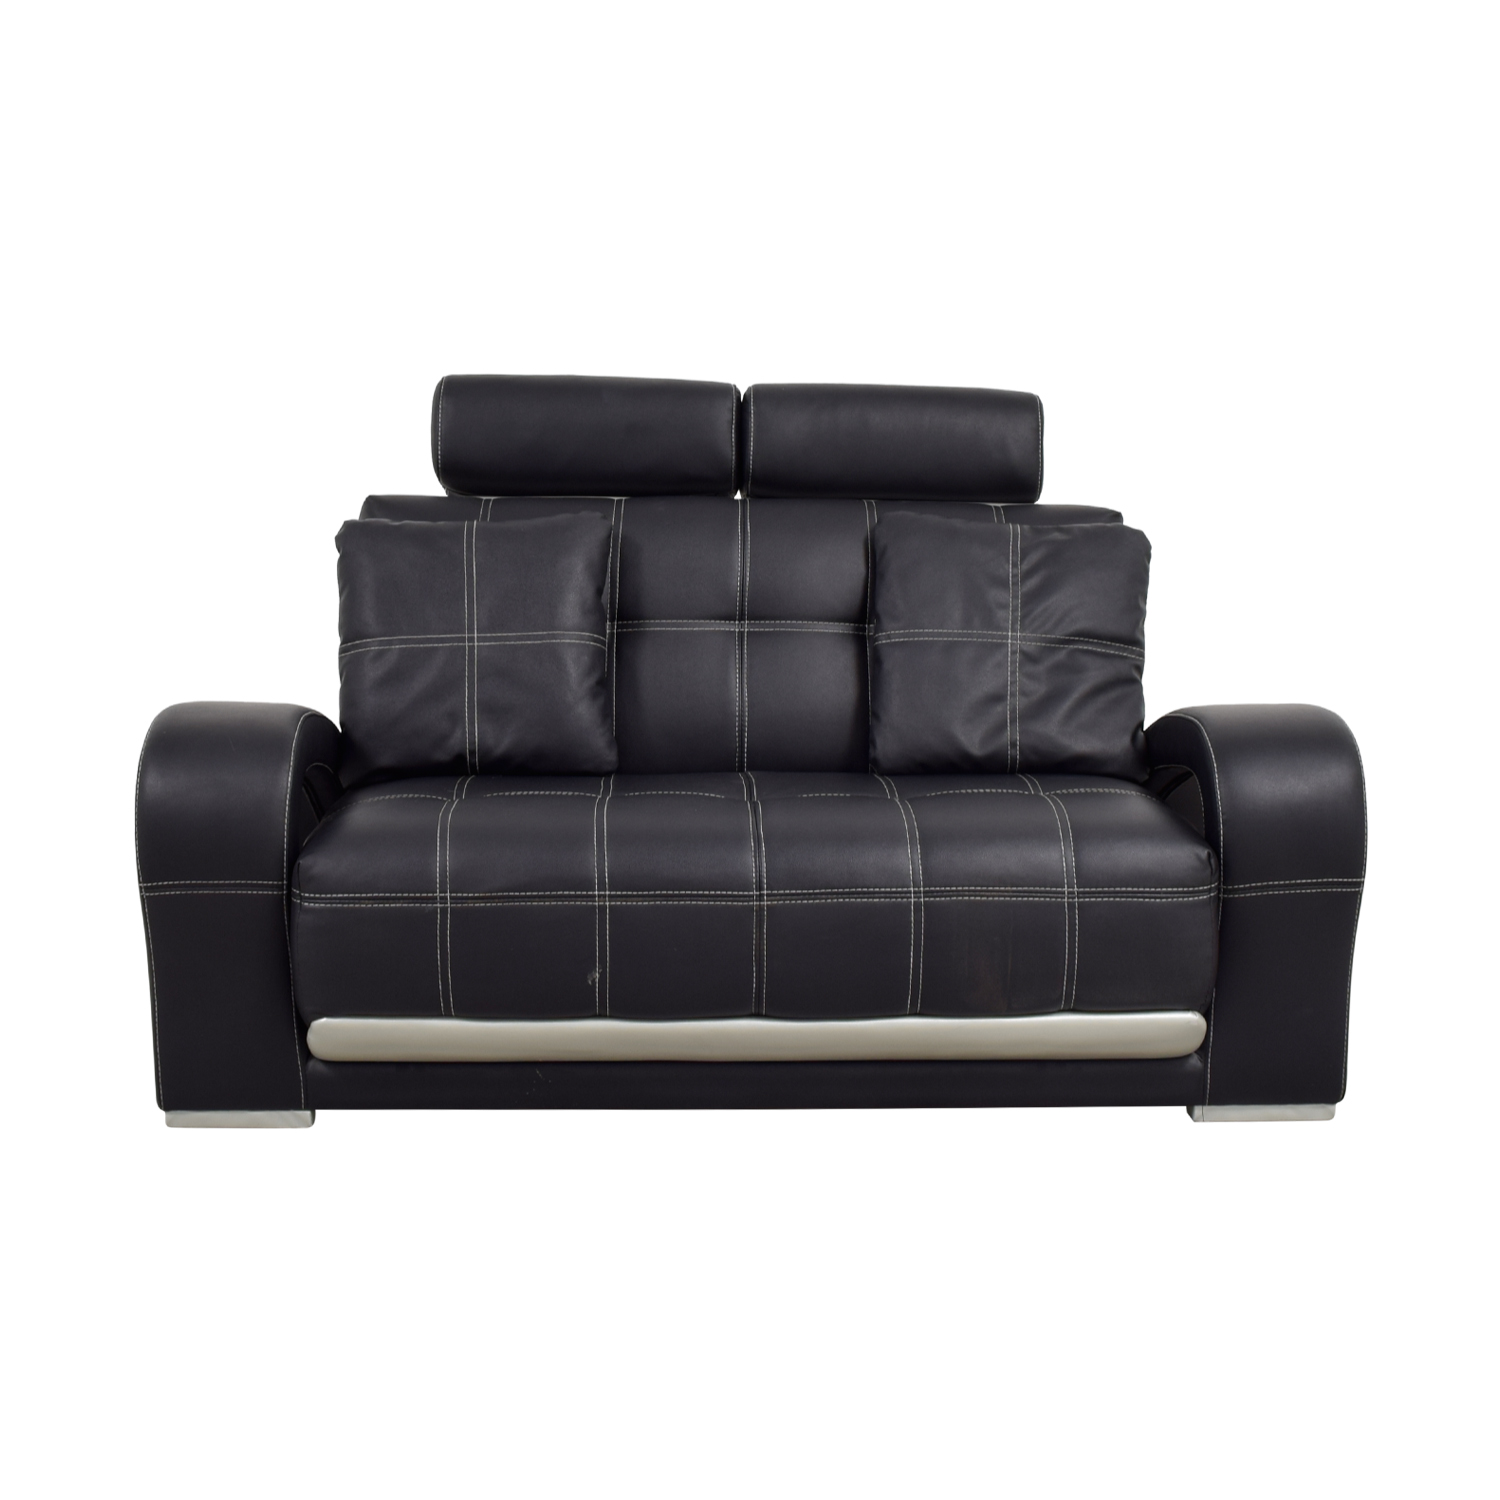 buy  Black Leather Love Seat with Pillows online